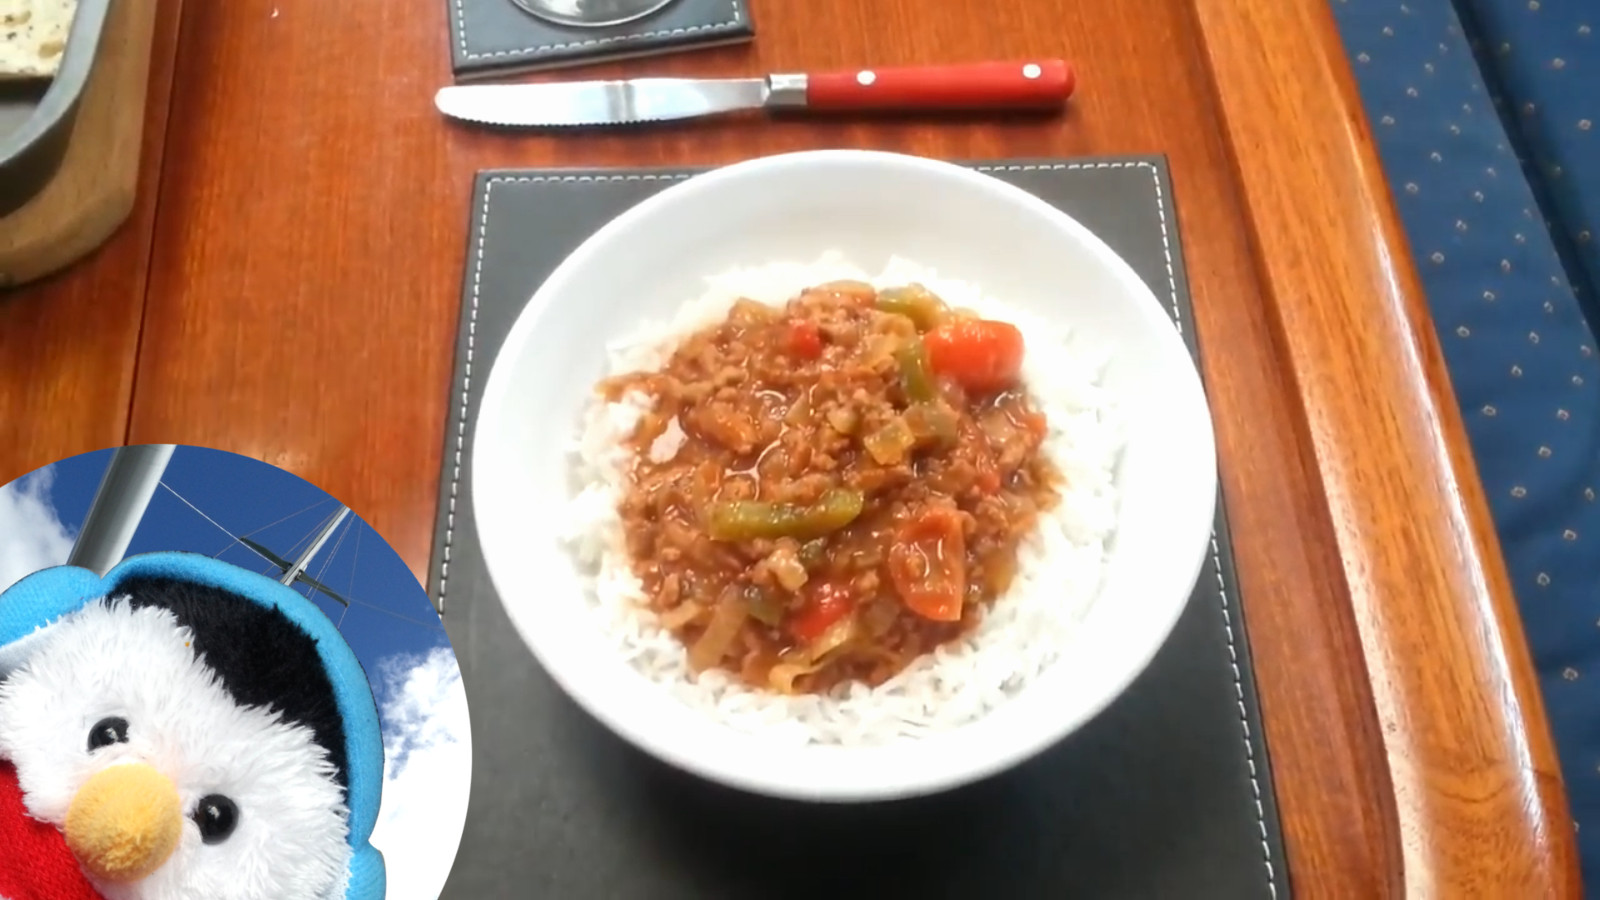 To watch how I made our leftover chilli and add comments etc.